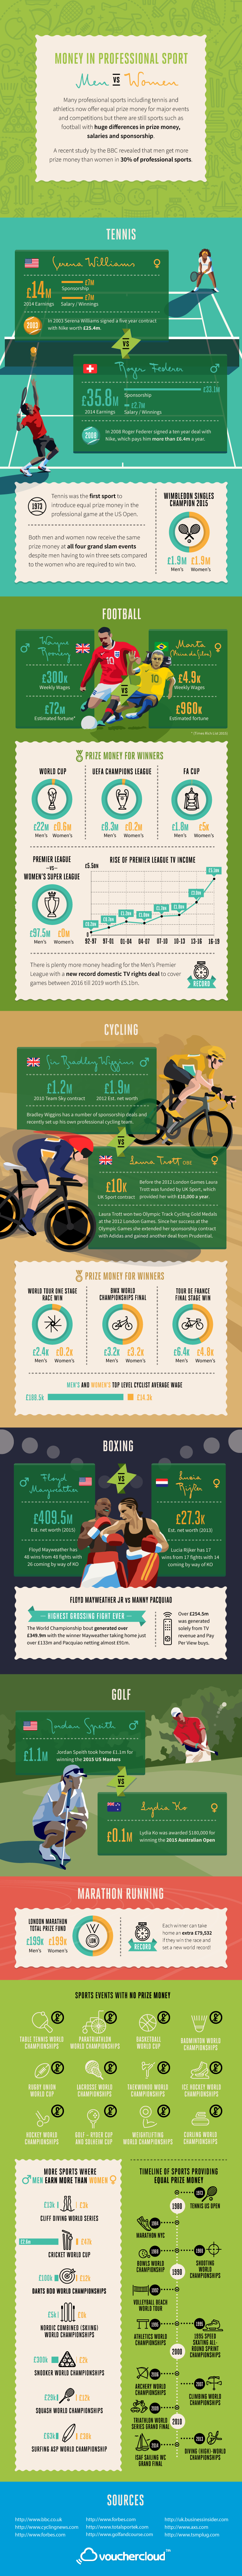 Money in Sport Infographic